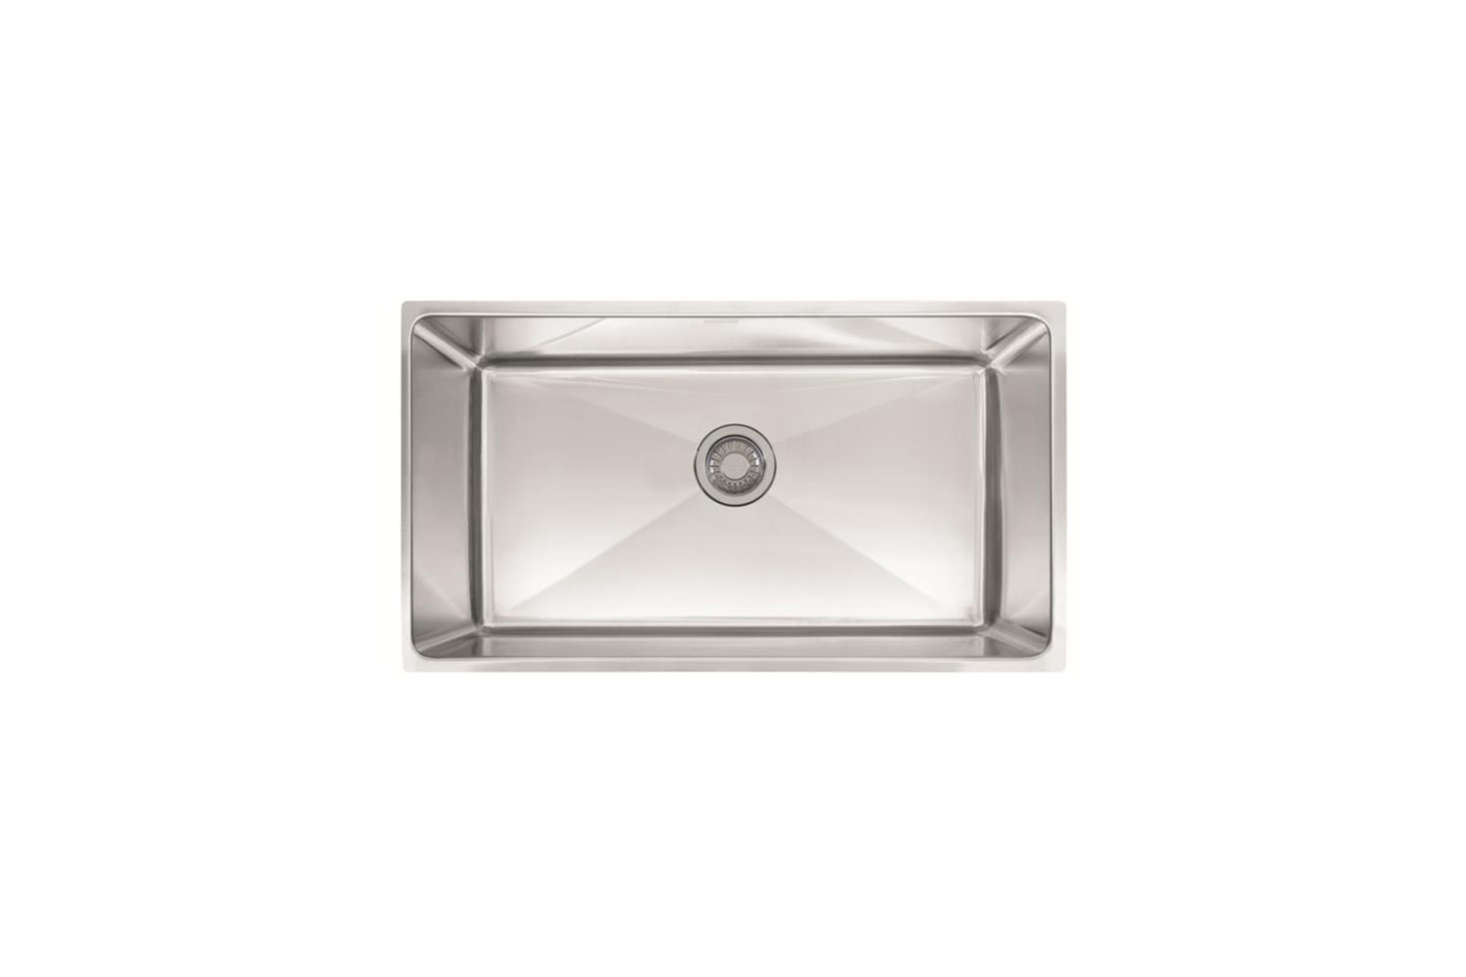 For a deep-set stainless steel sink, the Franke Professional Series 34-Inch Undermount Single Bowl Stainless Steel Sink is $src=